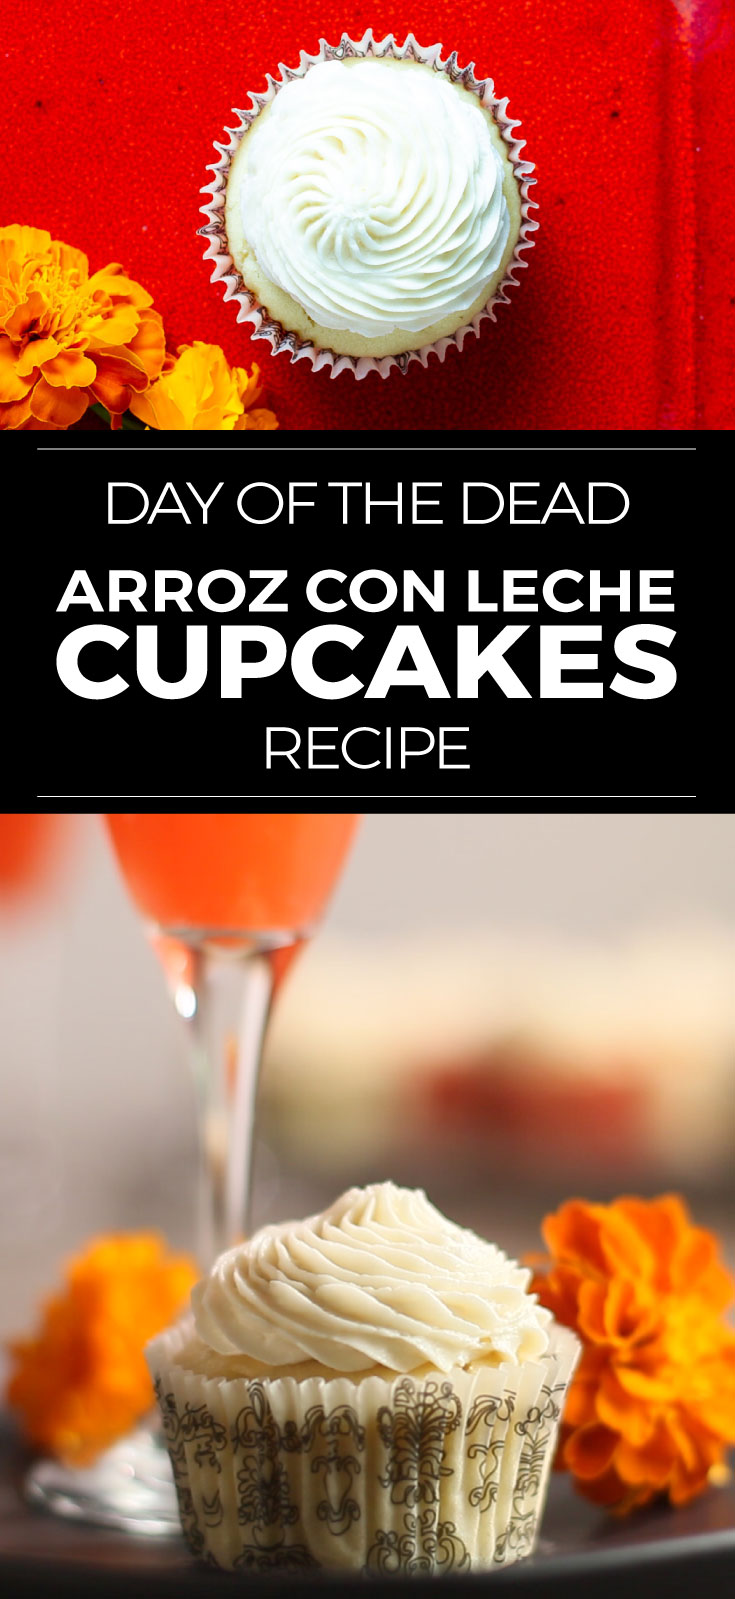 Day of the Dead recipe for arroz con leche cupcakes